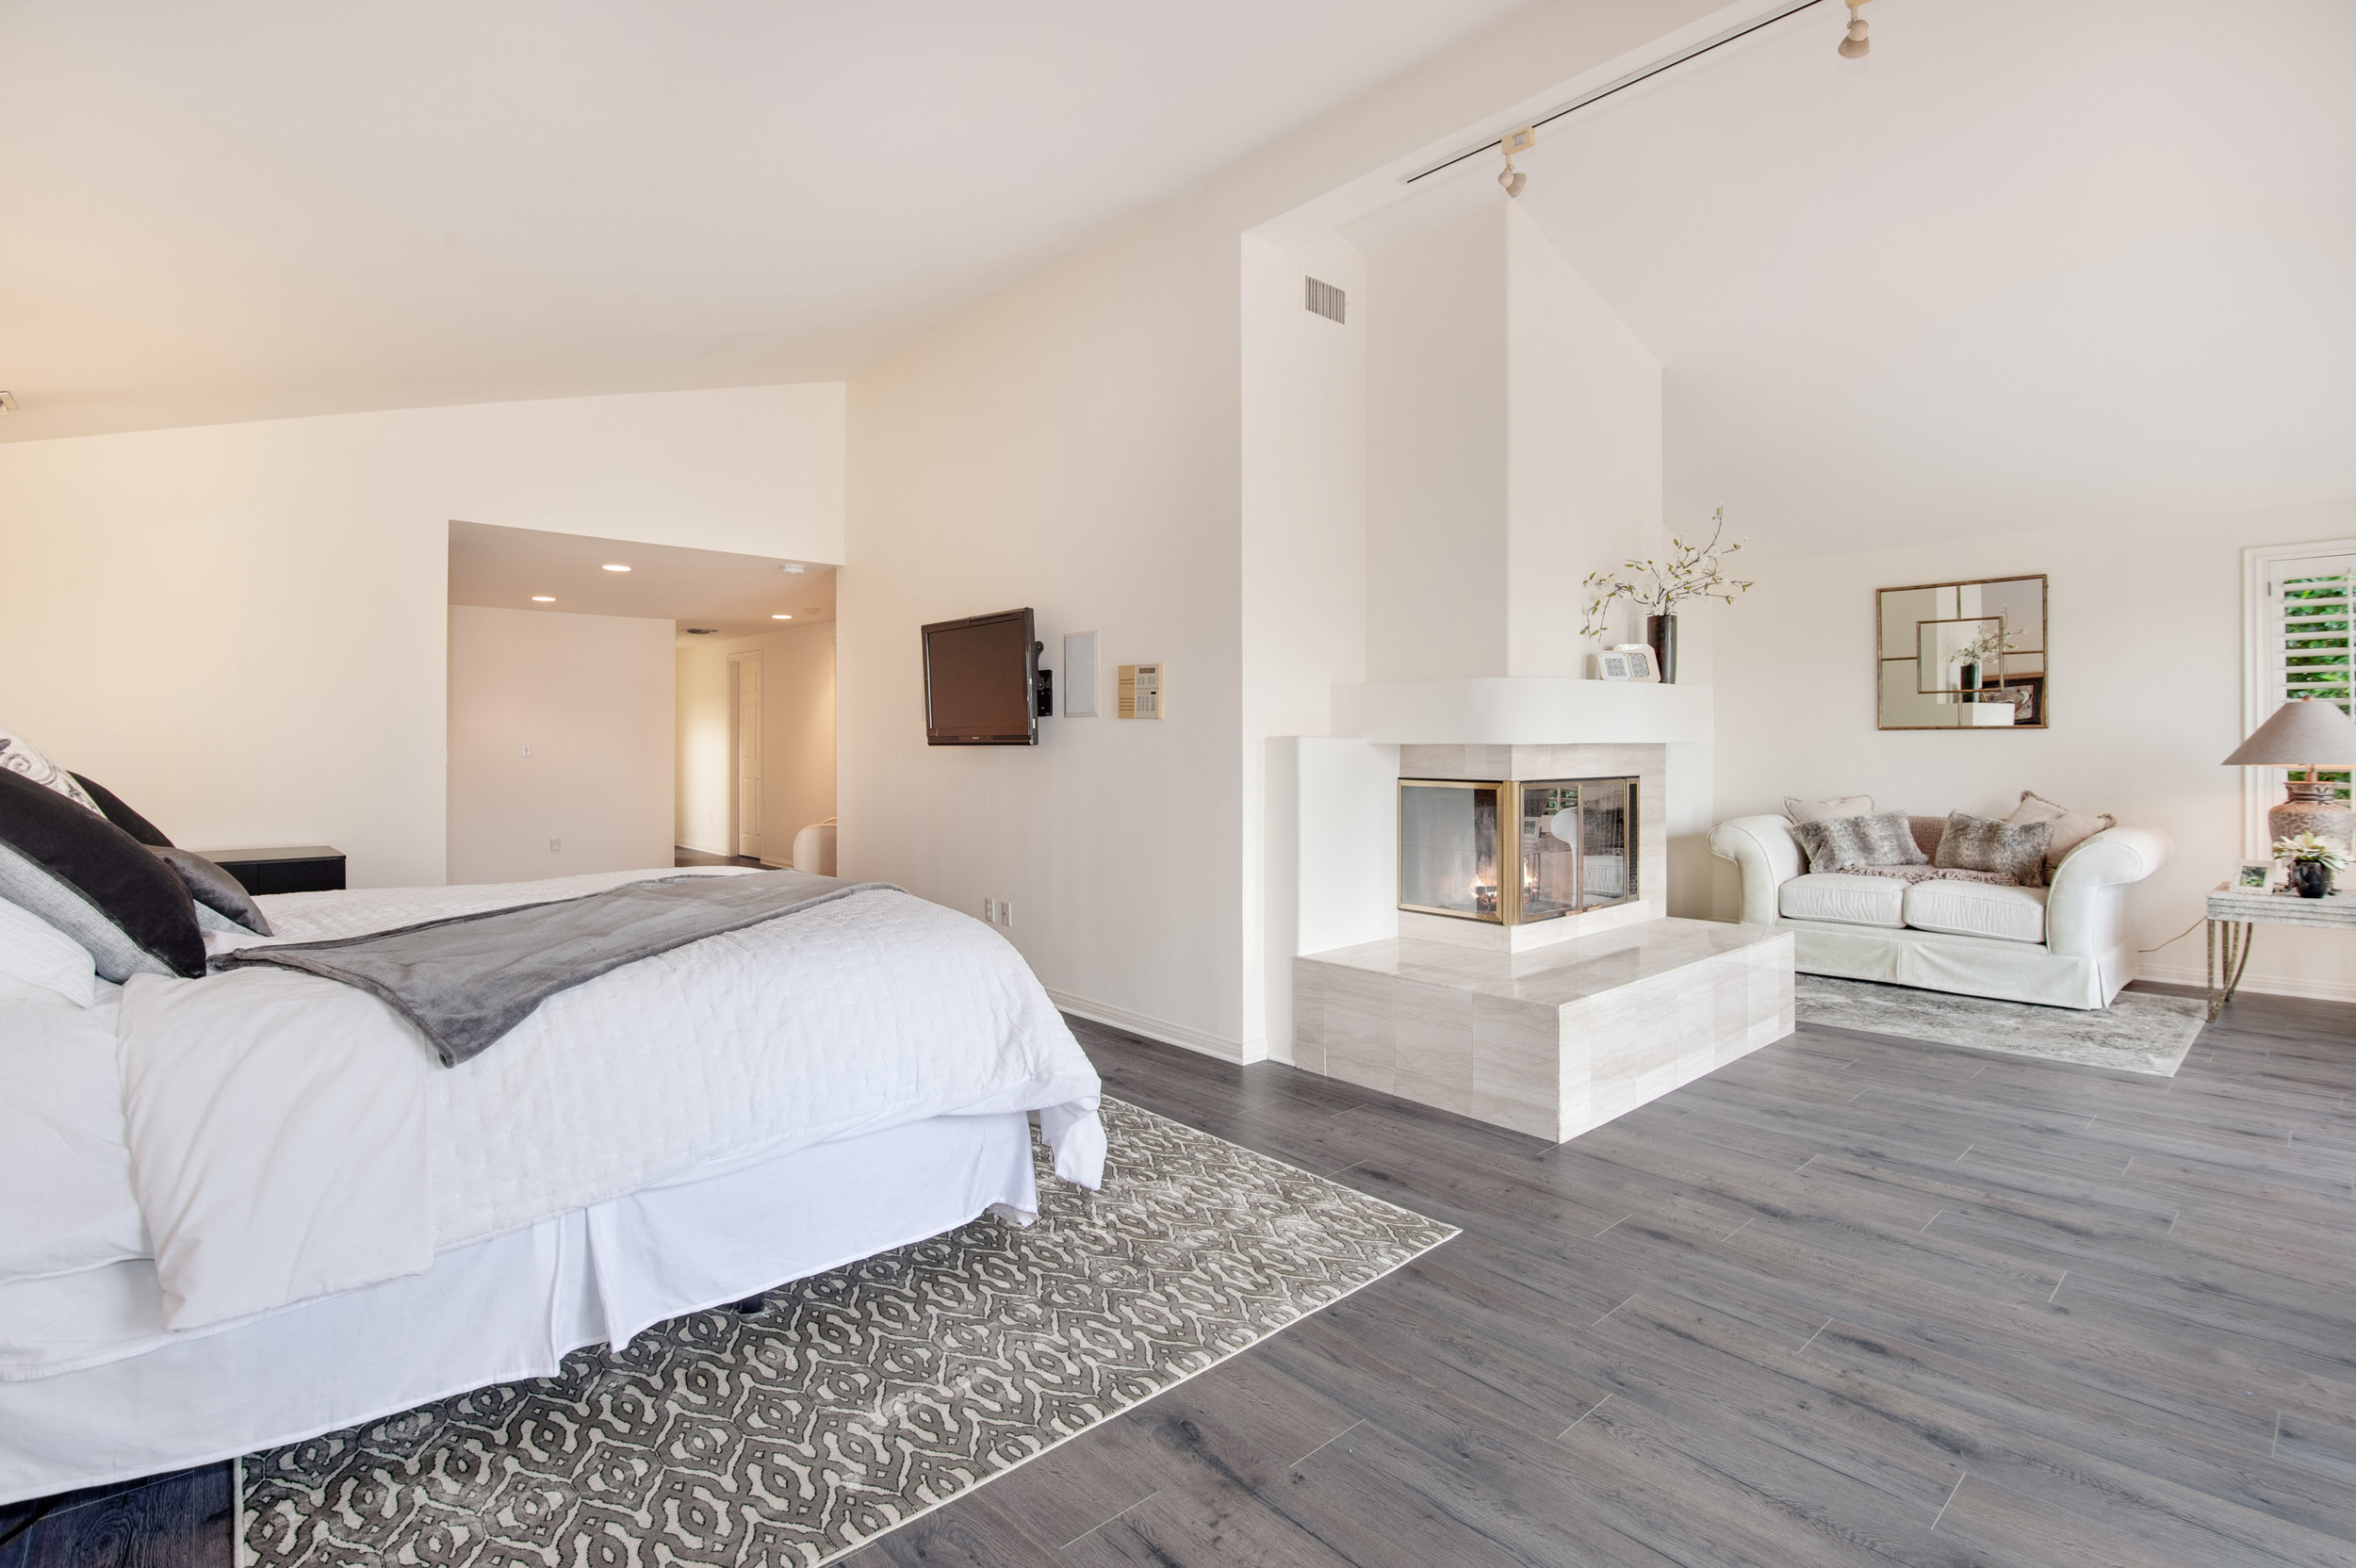 013 Master Bedroom 12027 Talus Place Beverly Hills 90210 For Sale Lease The Malibu Life Team Luxury Real Estate.jpg